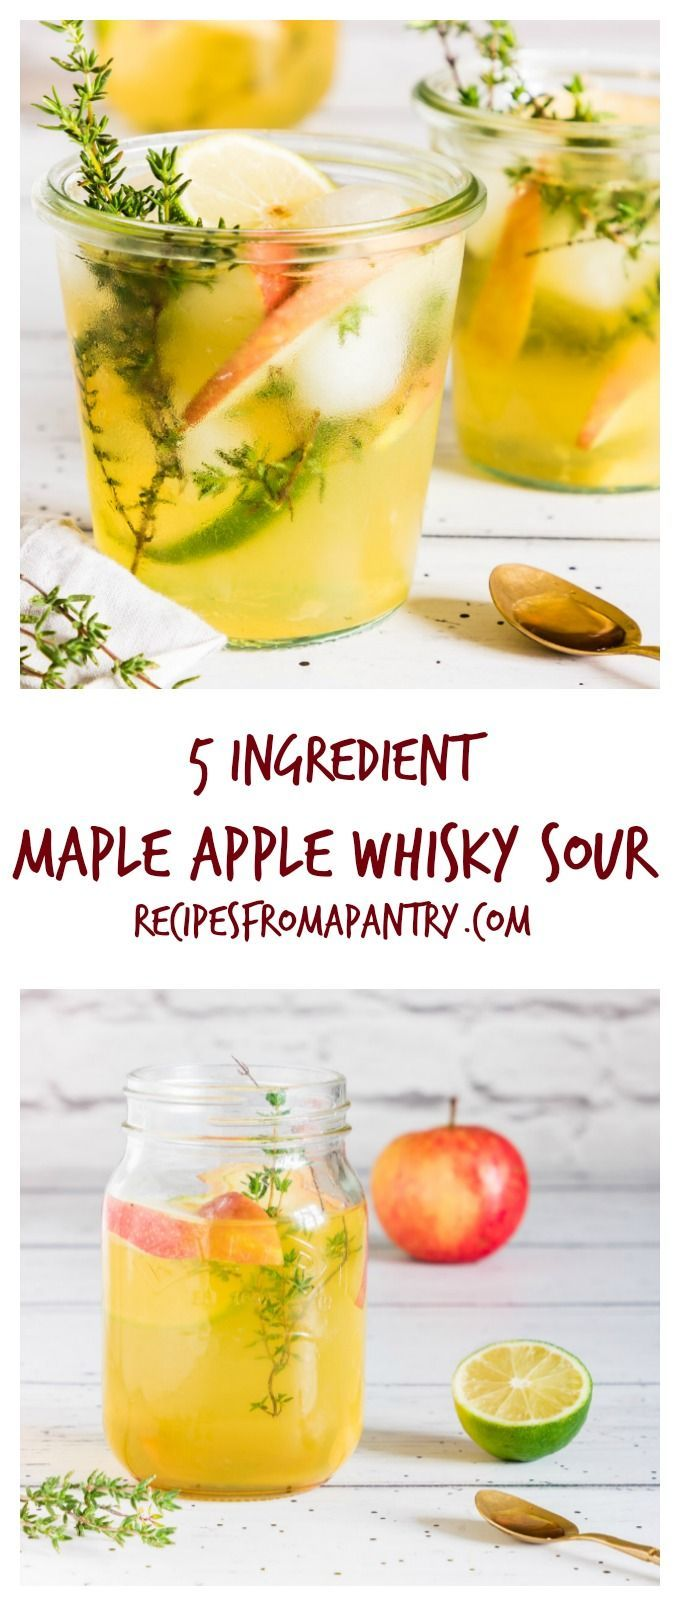 I have triple tested this maple apple whisky sour so you can whip up and drink the best cocktail recipe in town. Try it and see. recipesfromapantry.com #whiskysour #applewhiskysour #maplewhiskysour #thymewhiskysour